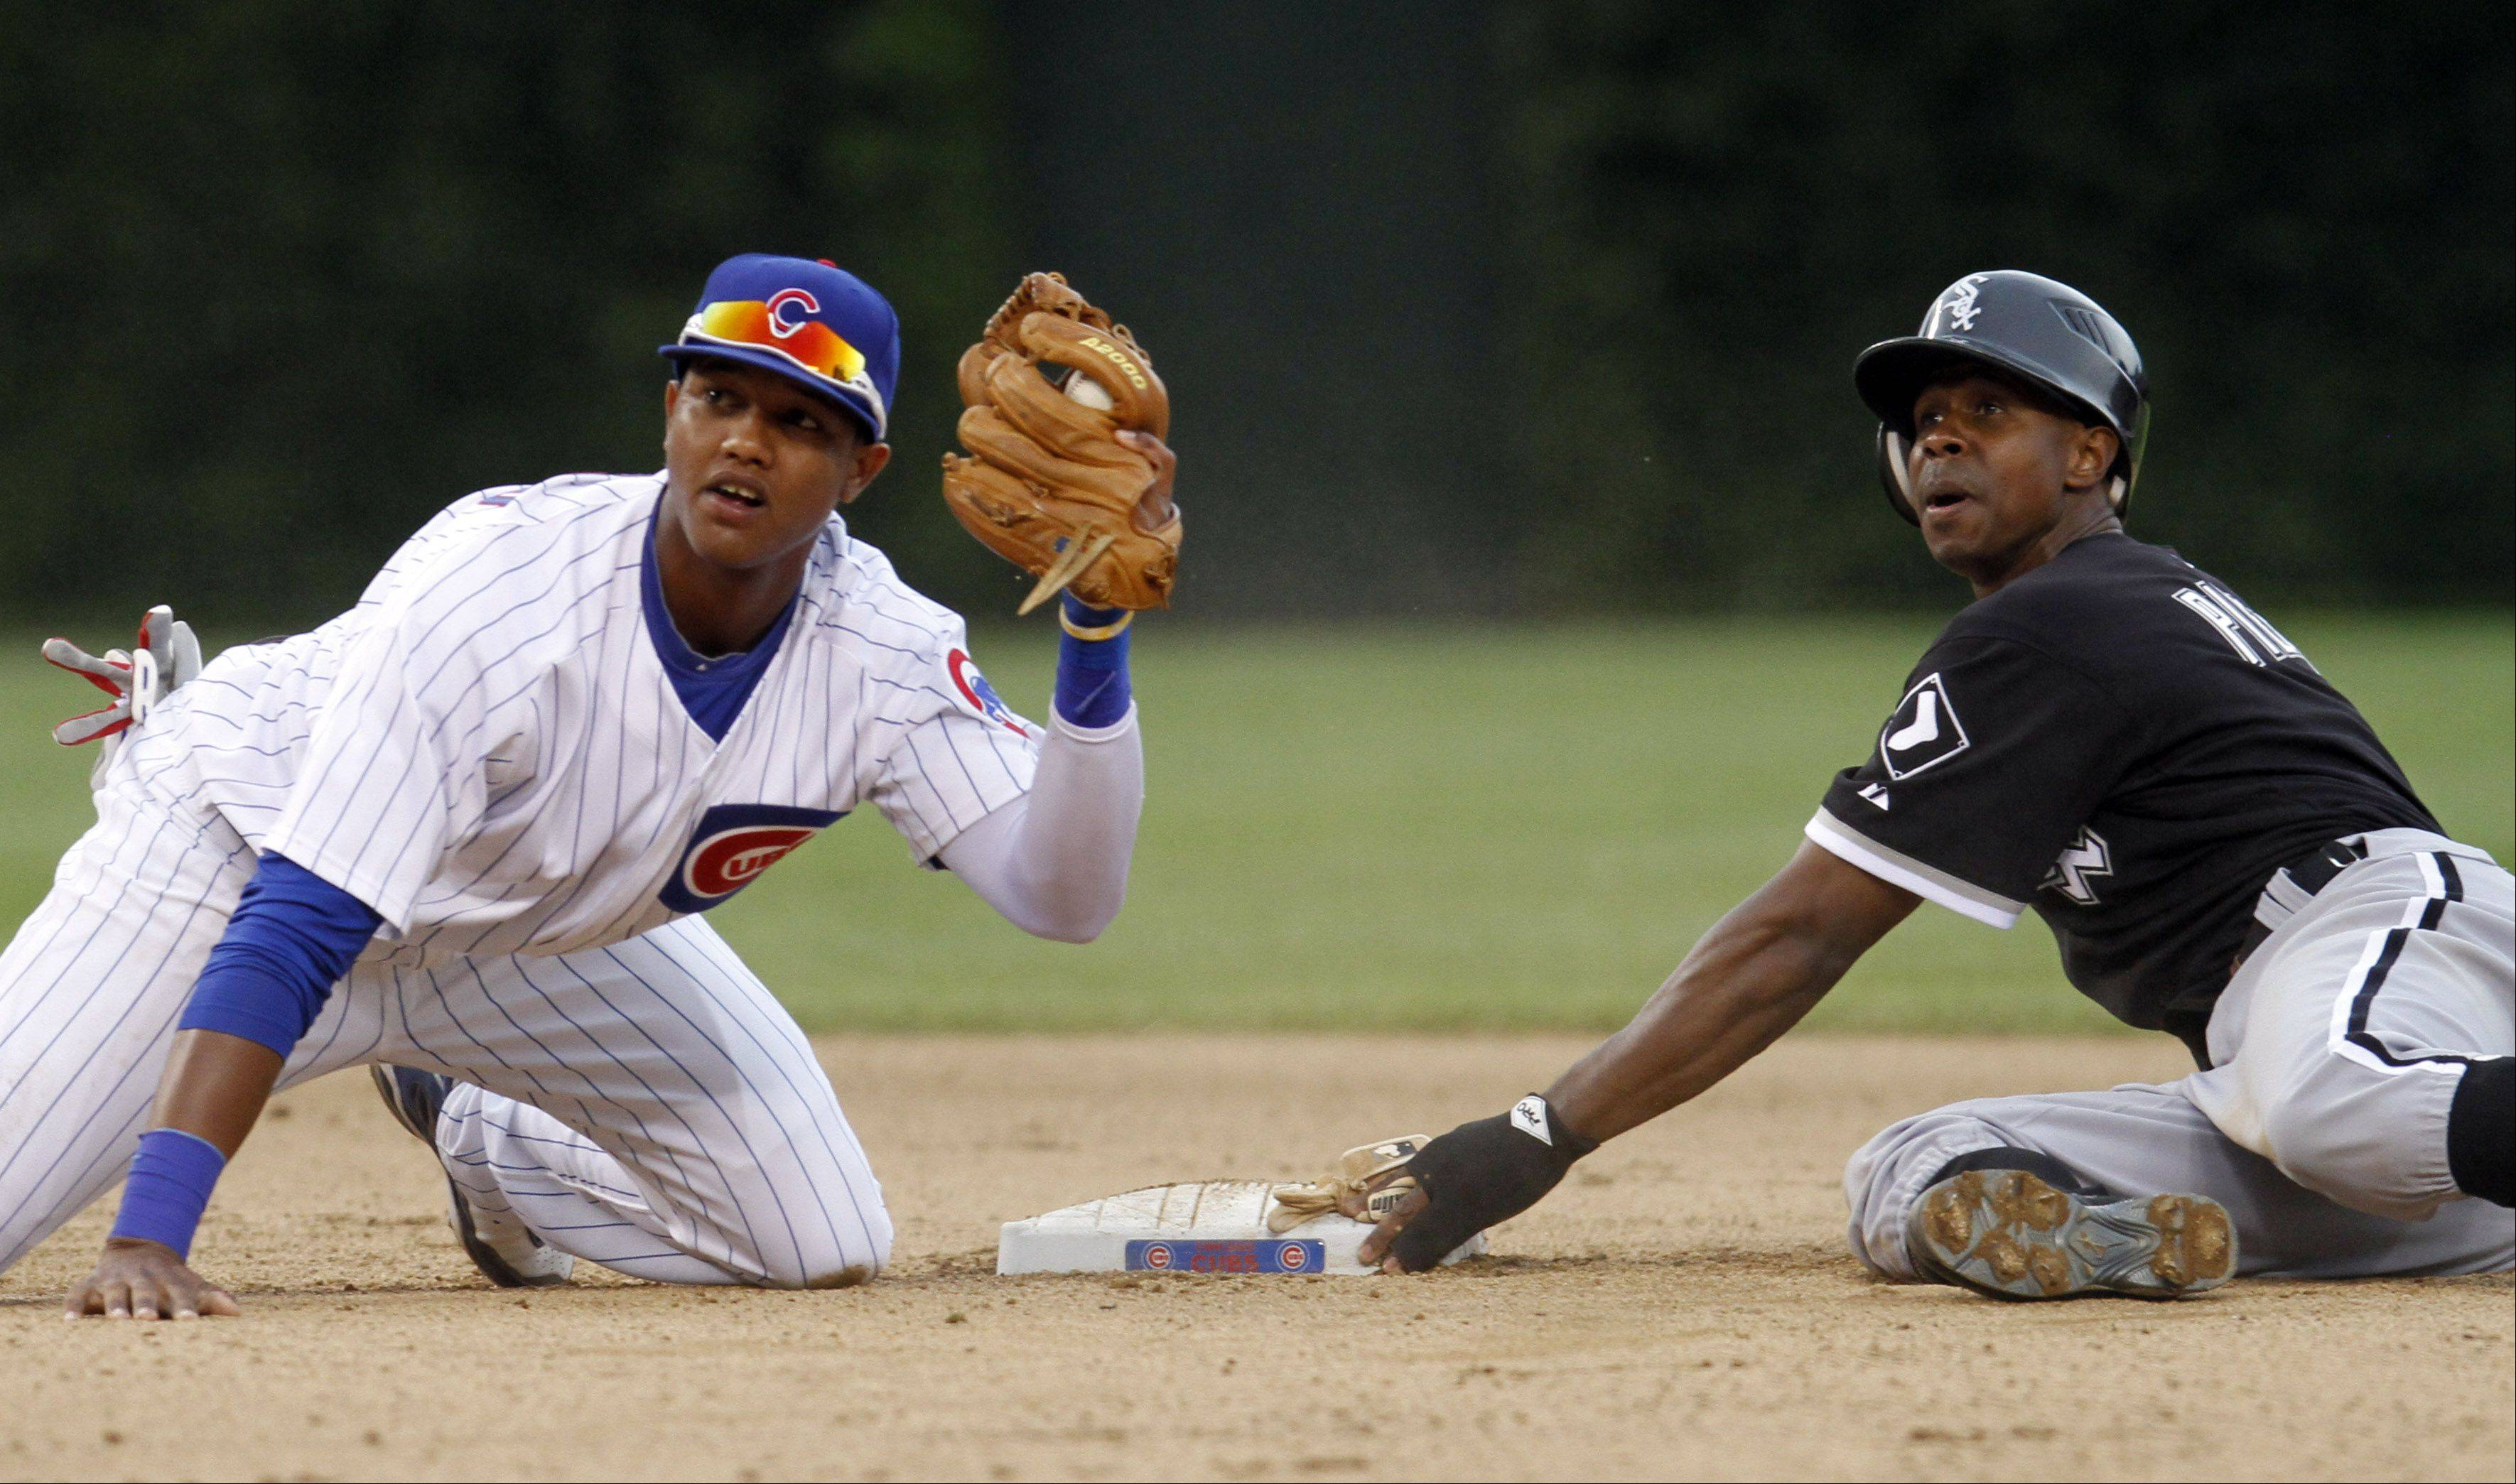 Chicago Cubs shortstop Starlin Castro, left, and Chicago White Sox's Juan Pierre look at second base umpire Kerwin Danley after Juan Pierre was safe stealing second during the seventh inning of an interleague baseball game in Chicago, Saturday, June 12, 2010. The White Sox won 2-0.